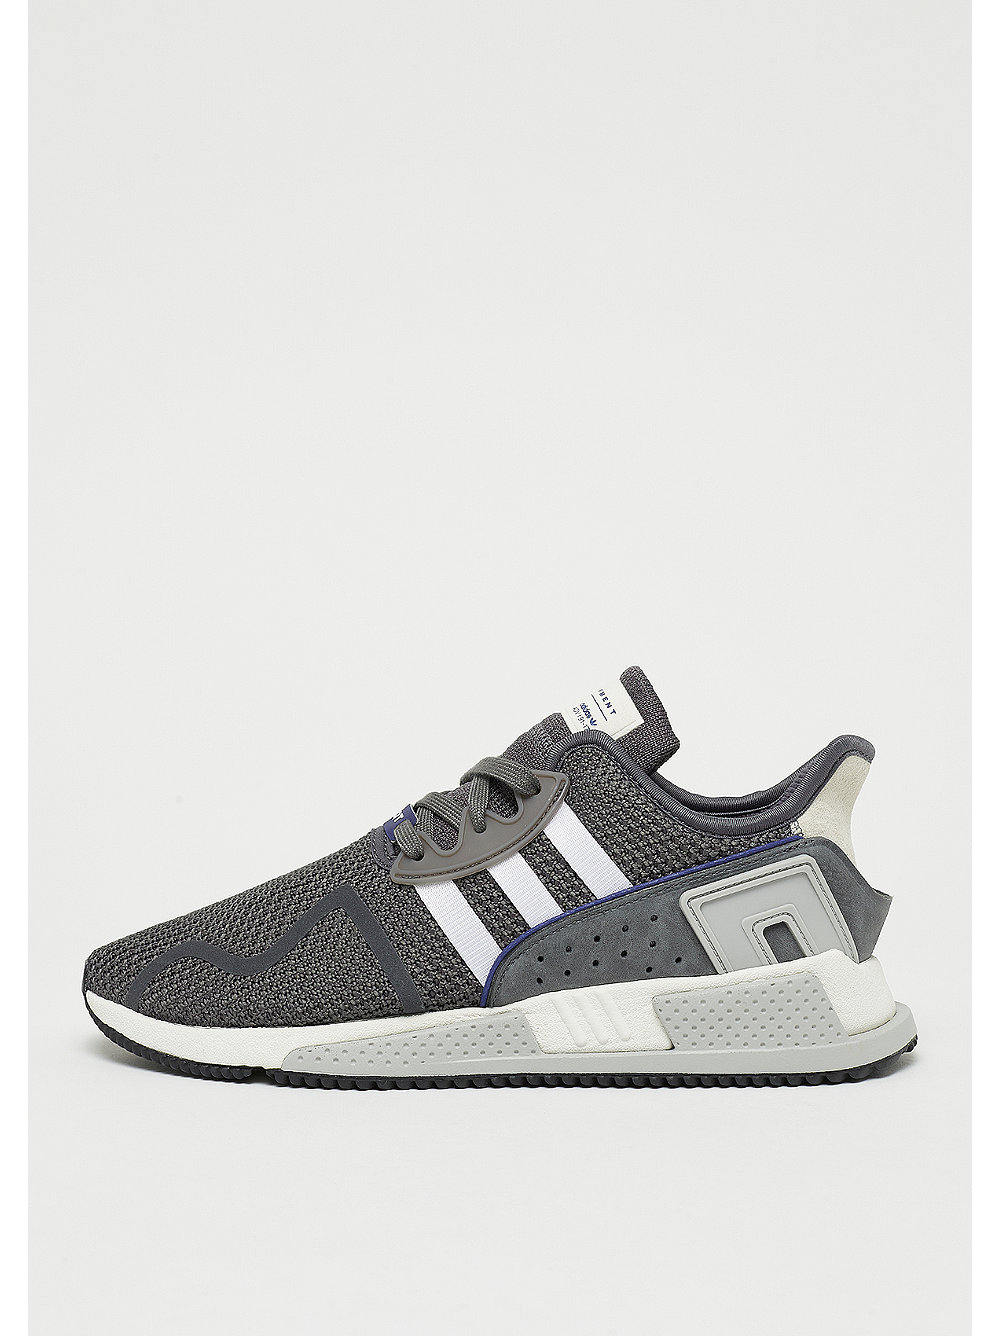 adidas EQT Cushion ADV grey five im SNIPES Onlineshop